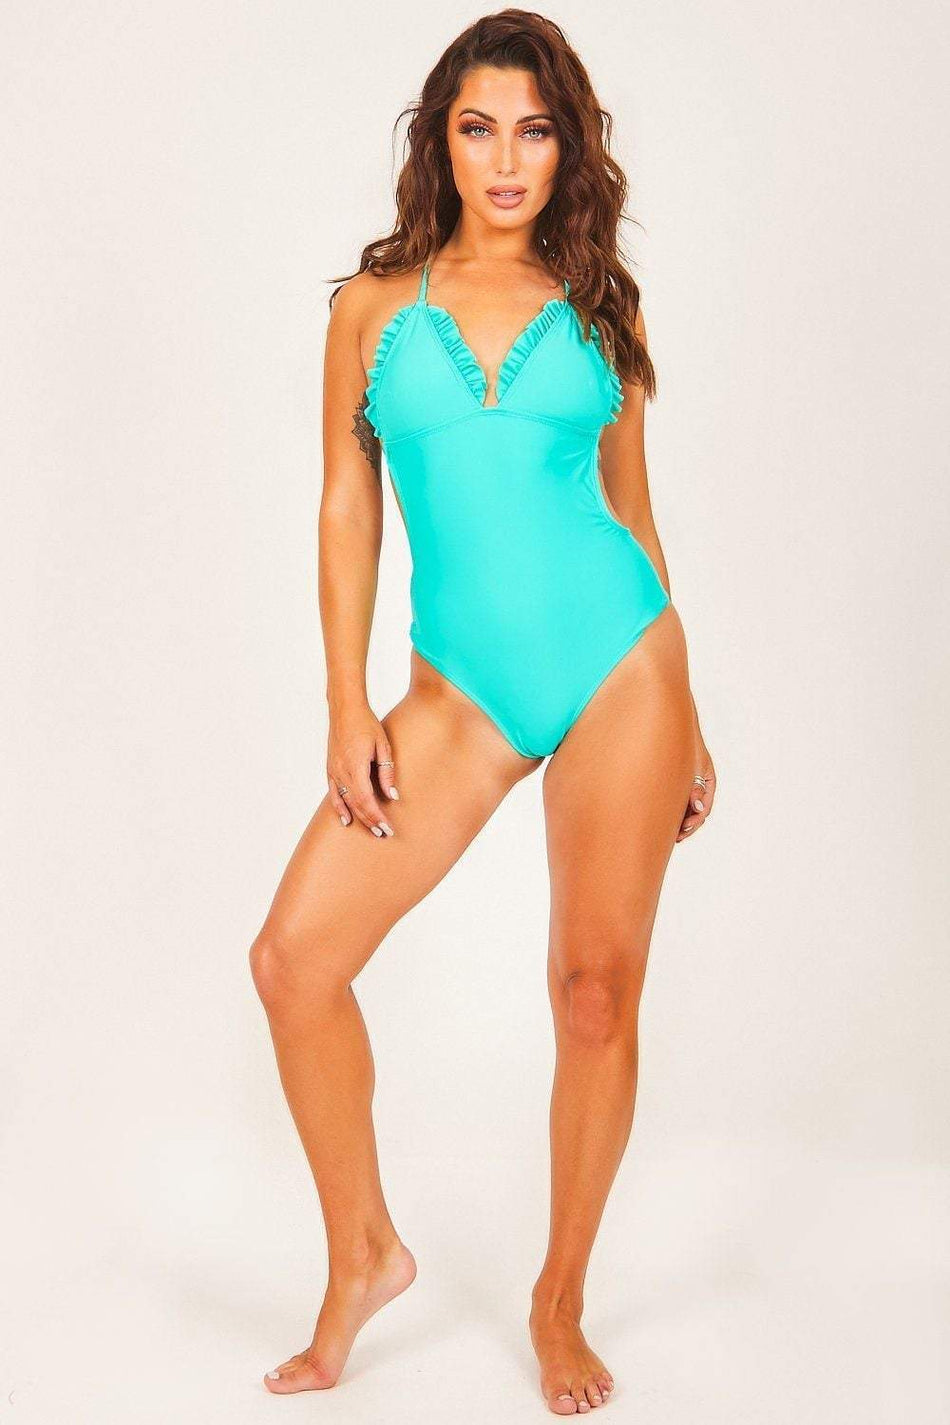 Turquoise Strappy Plunge Swimsuit - KATCH ME